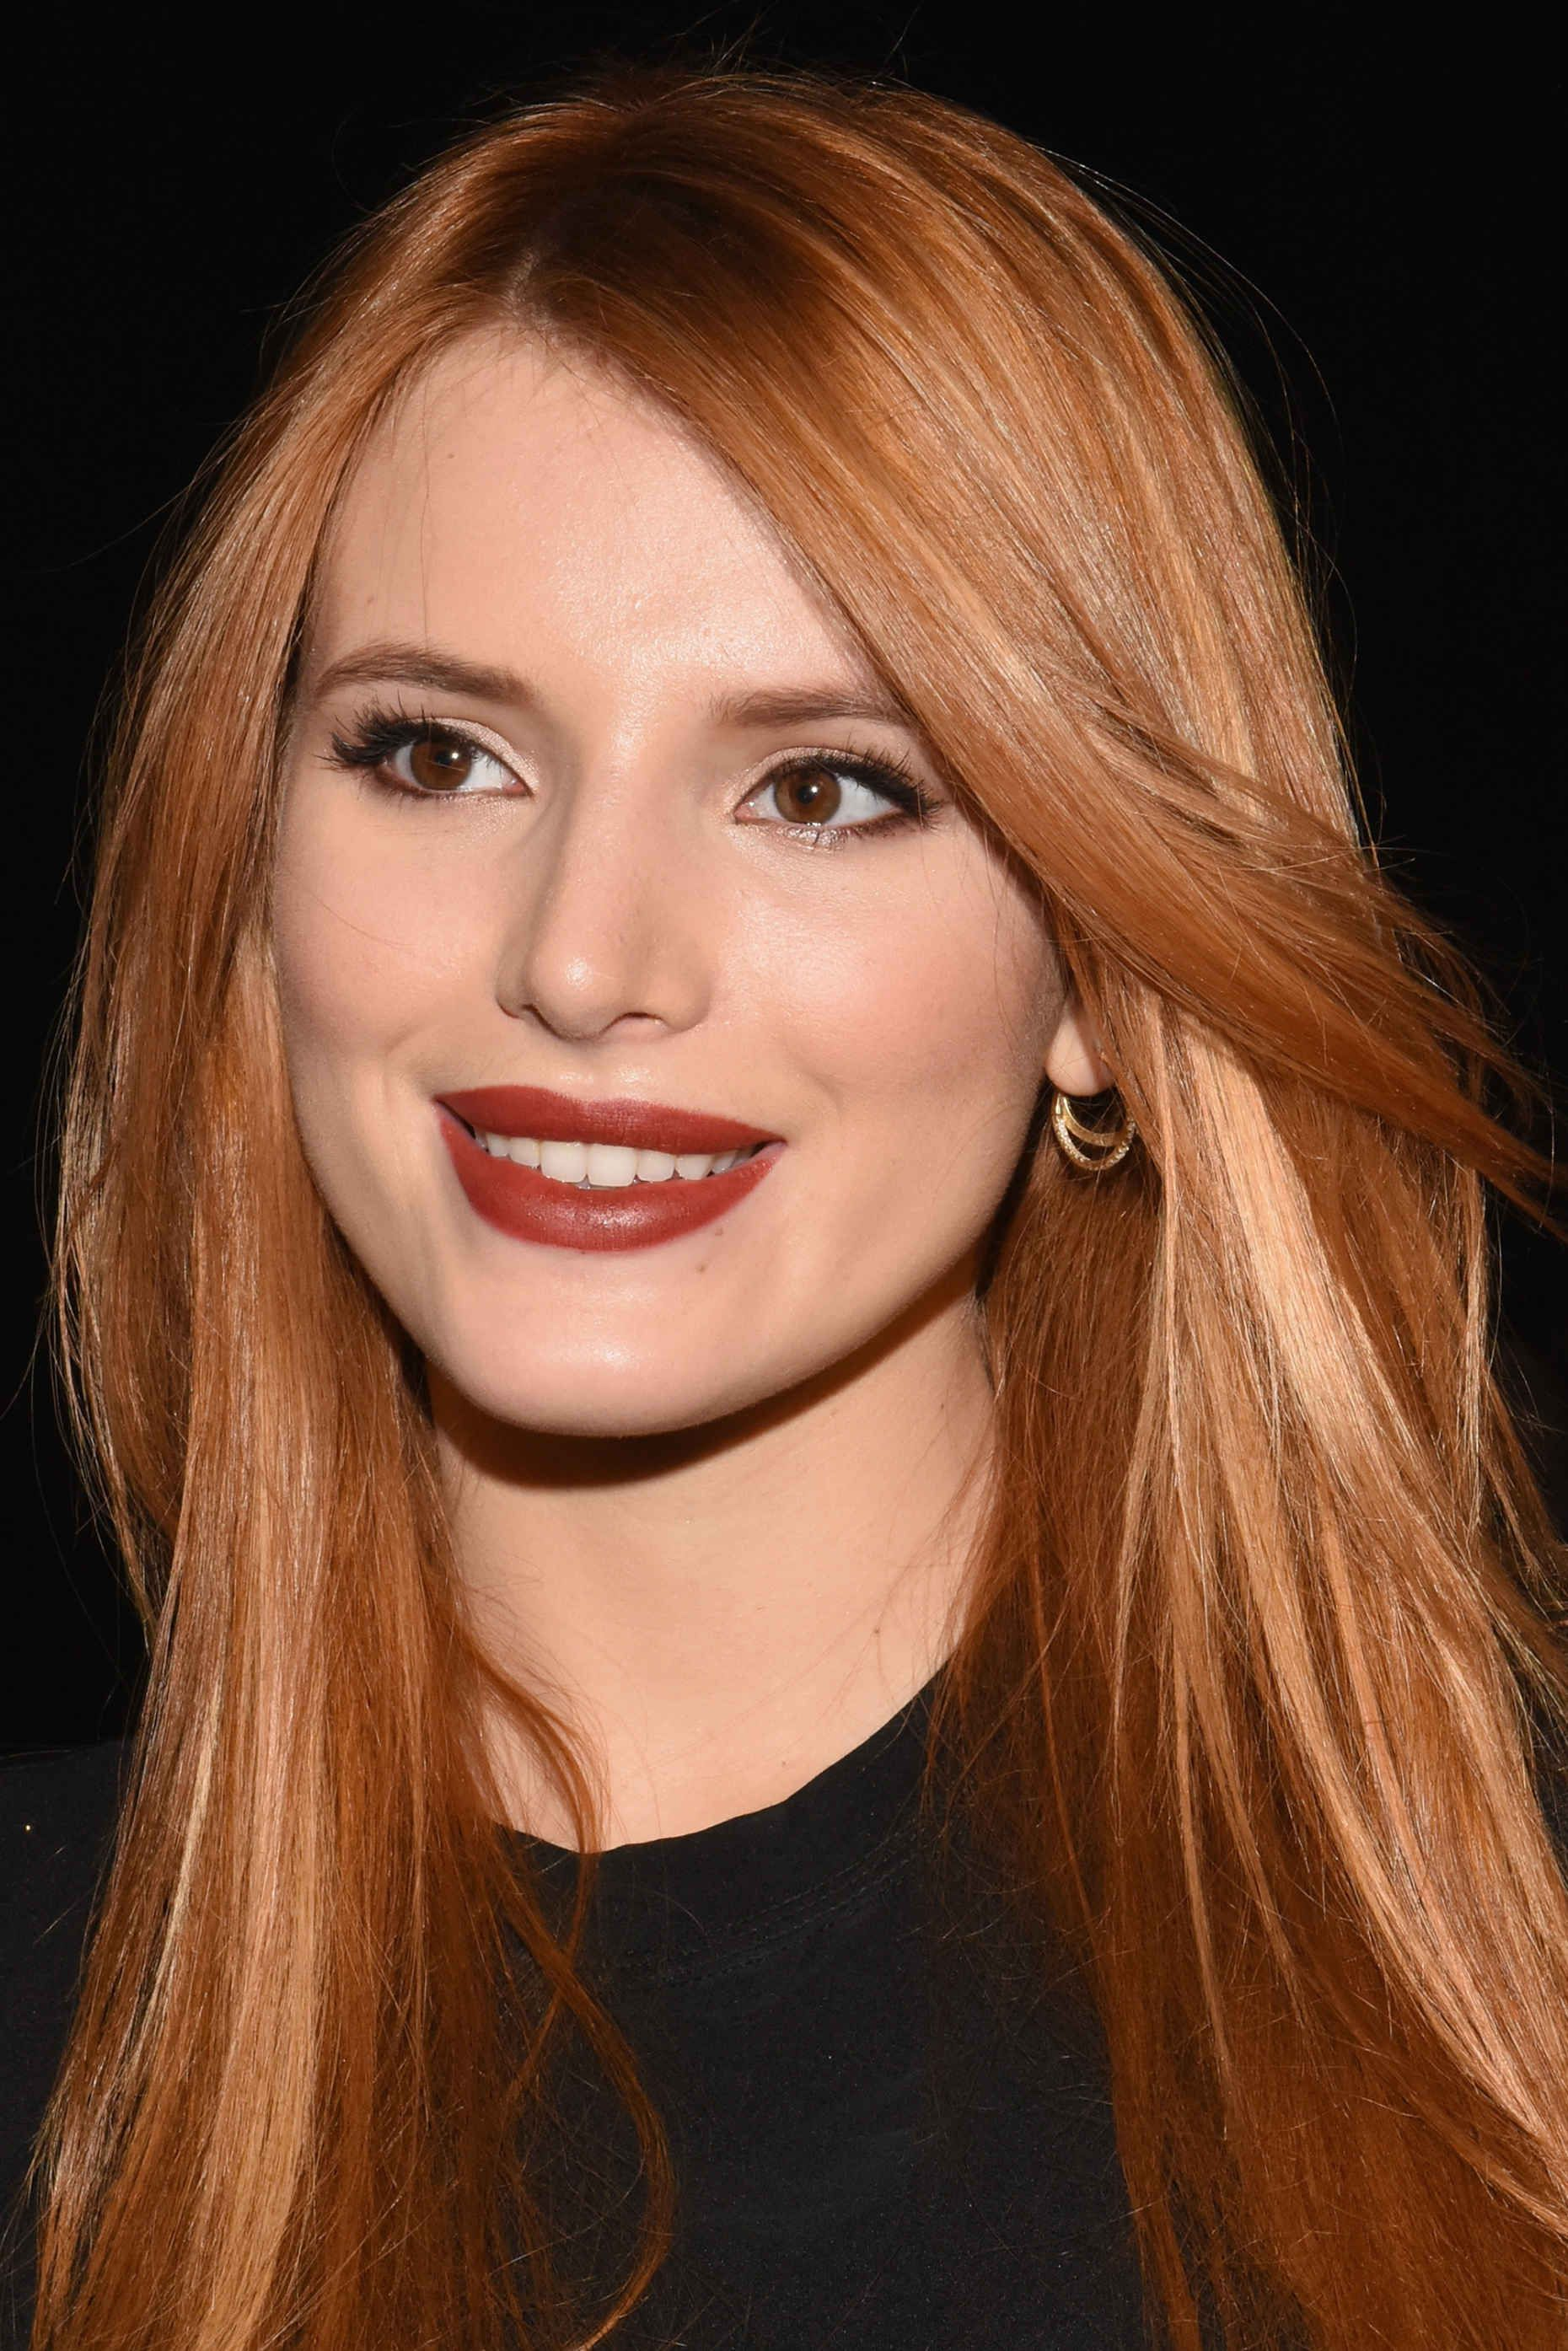 From Brick Red Lipstick To Cat Eyes 22 Of The Best Celebrity Beauty